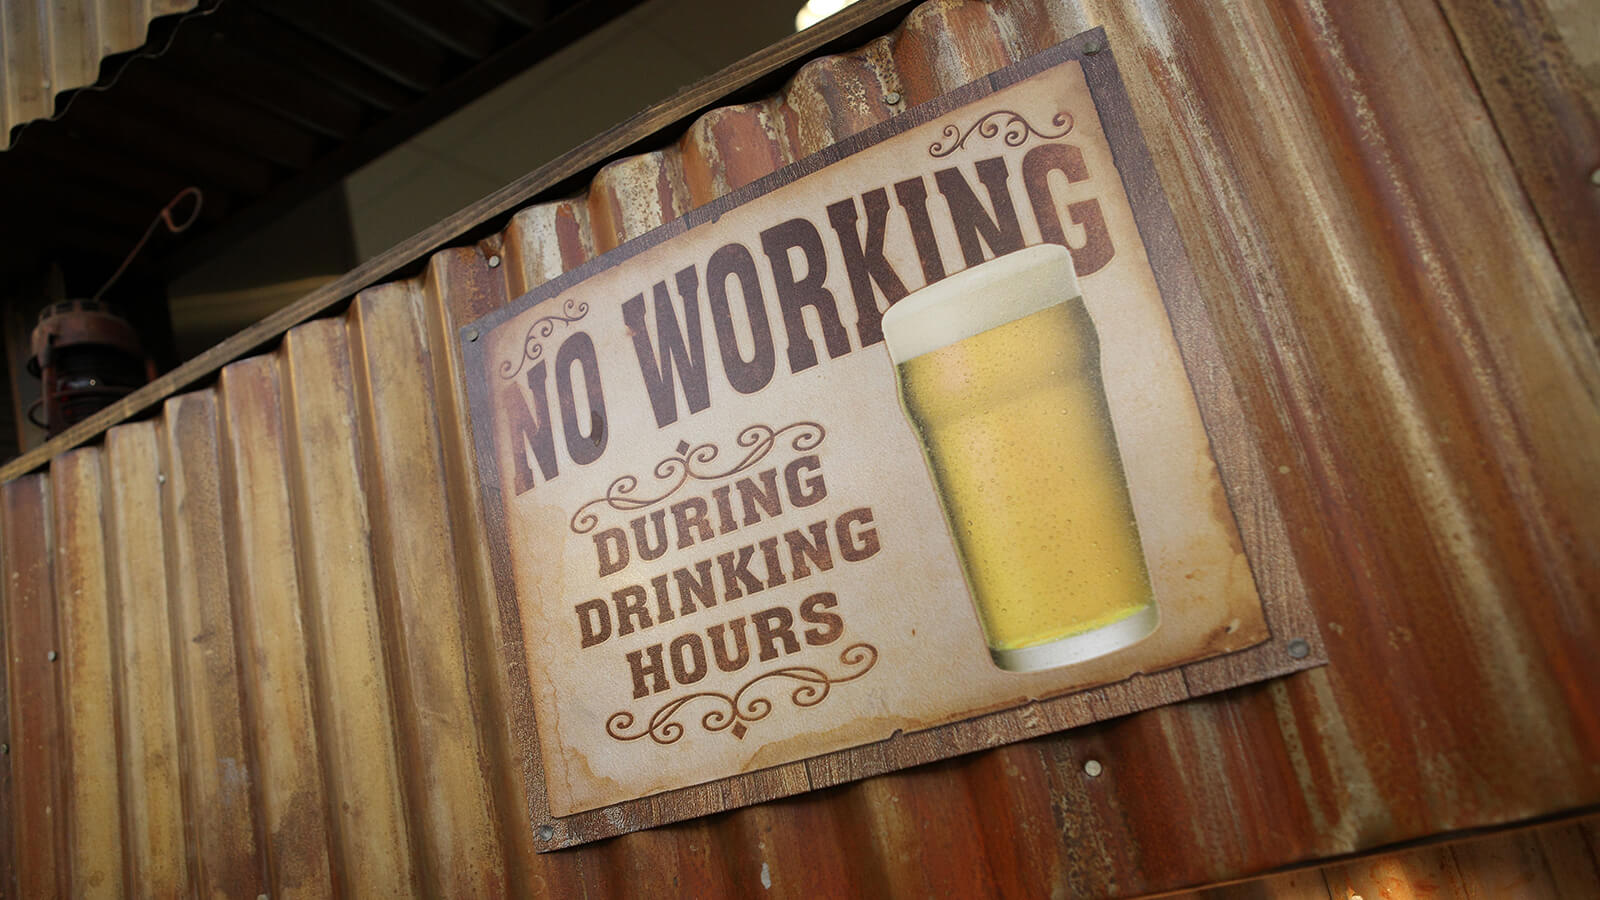 No working during drinking hours beer sign, found at the Anaheim packing district